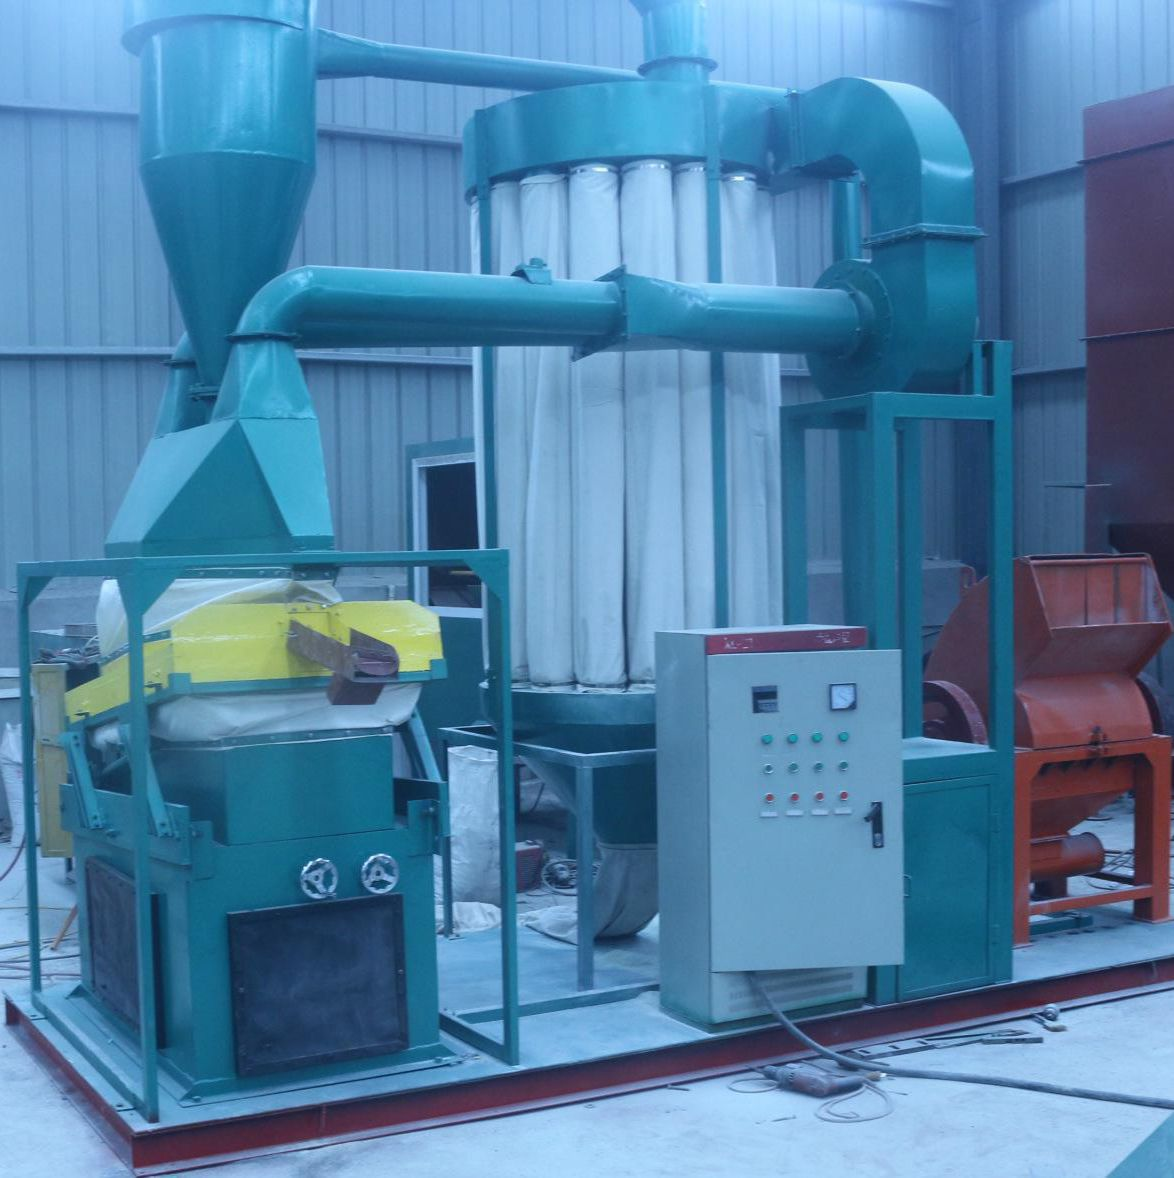 granulation and recycling machine for copper aluminum wire cable wiring harnesses communication cables household electric wire  [ 1174 x 1178 Pixel ]